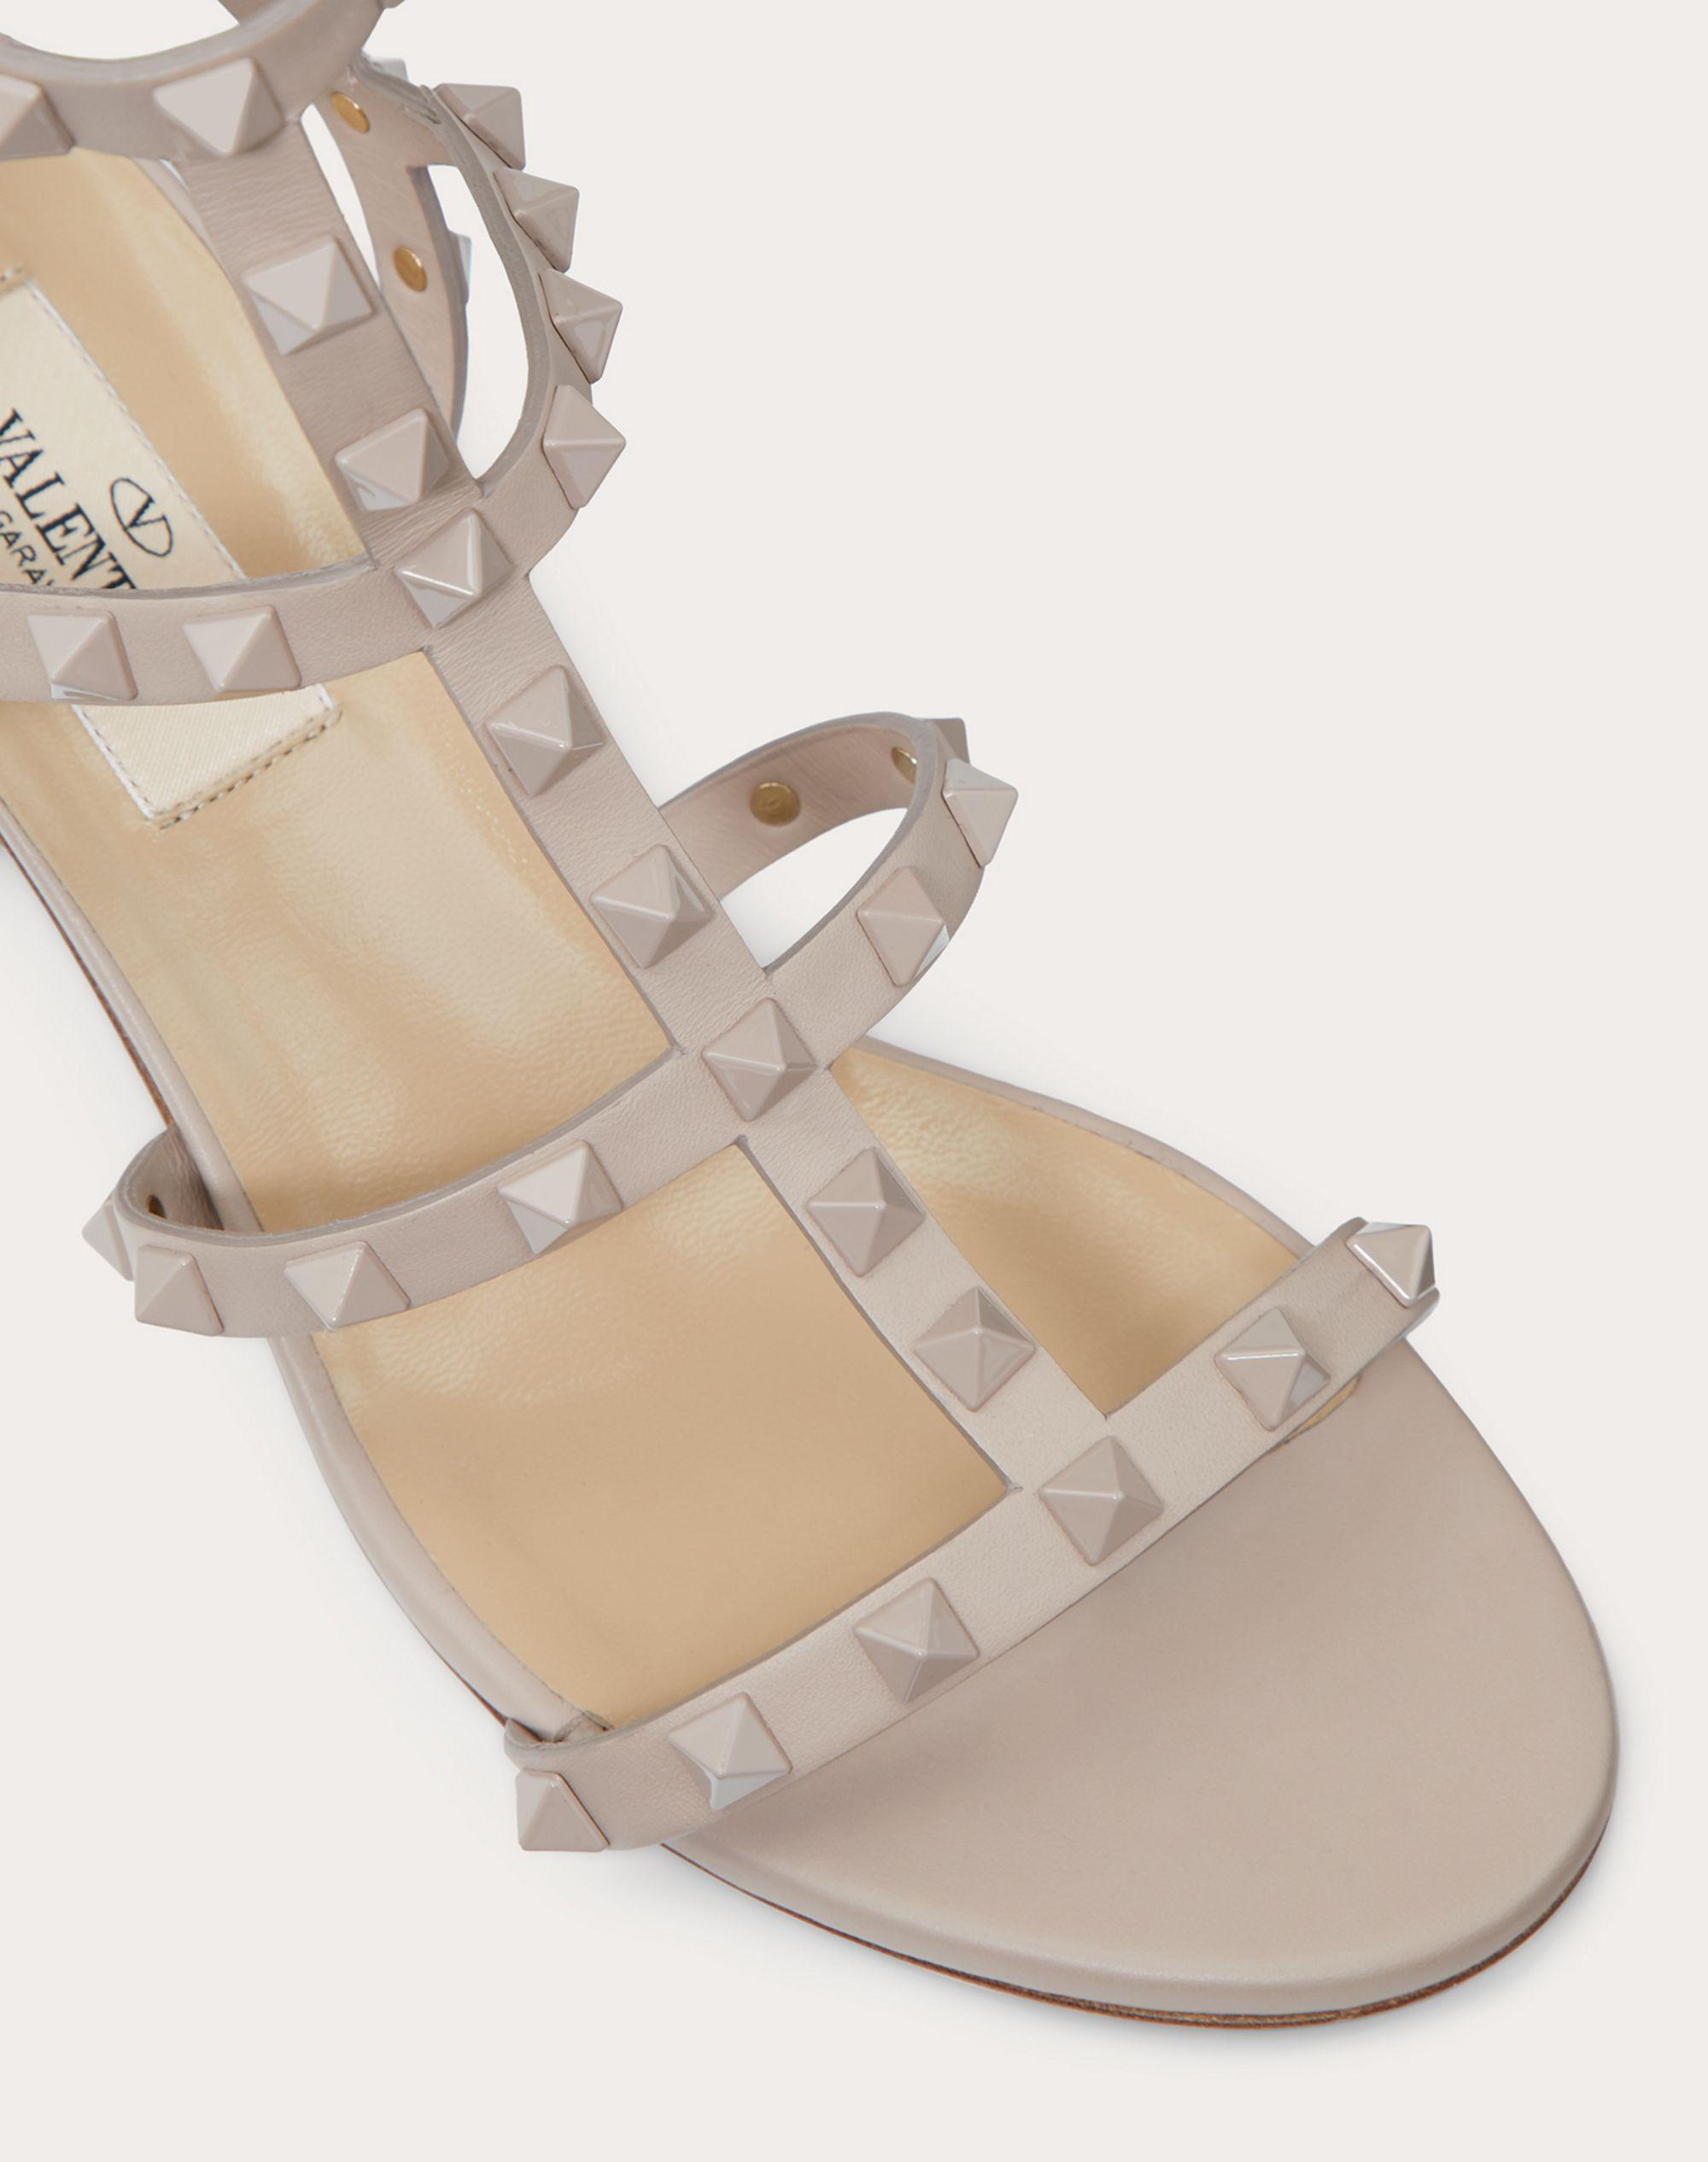 Rockstud Ankle Strap Calfskin Leather Sandal with Tonal Studs 60 mm 4